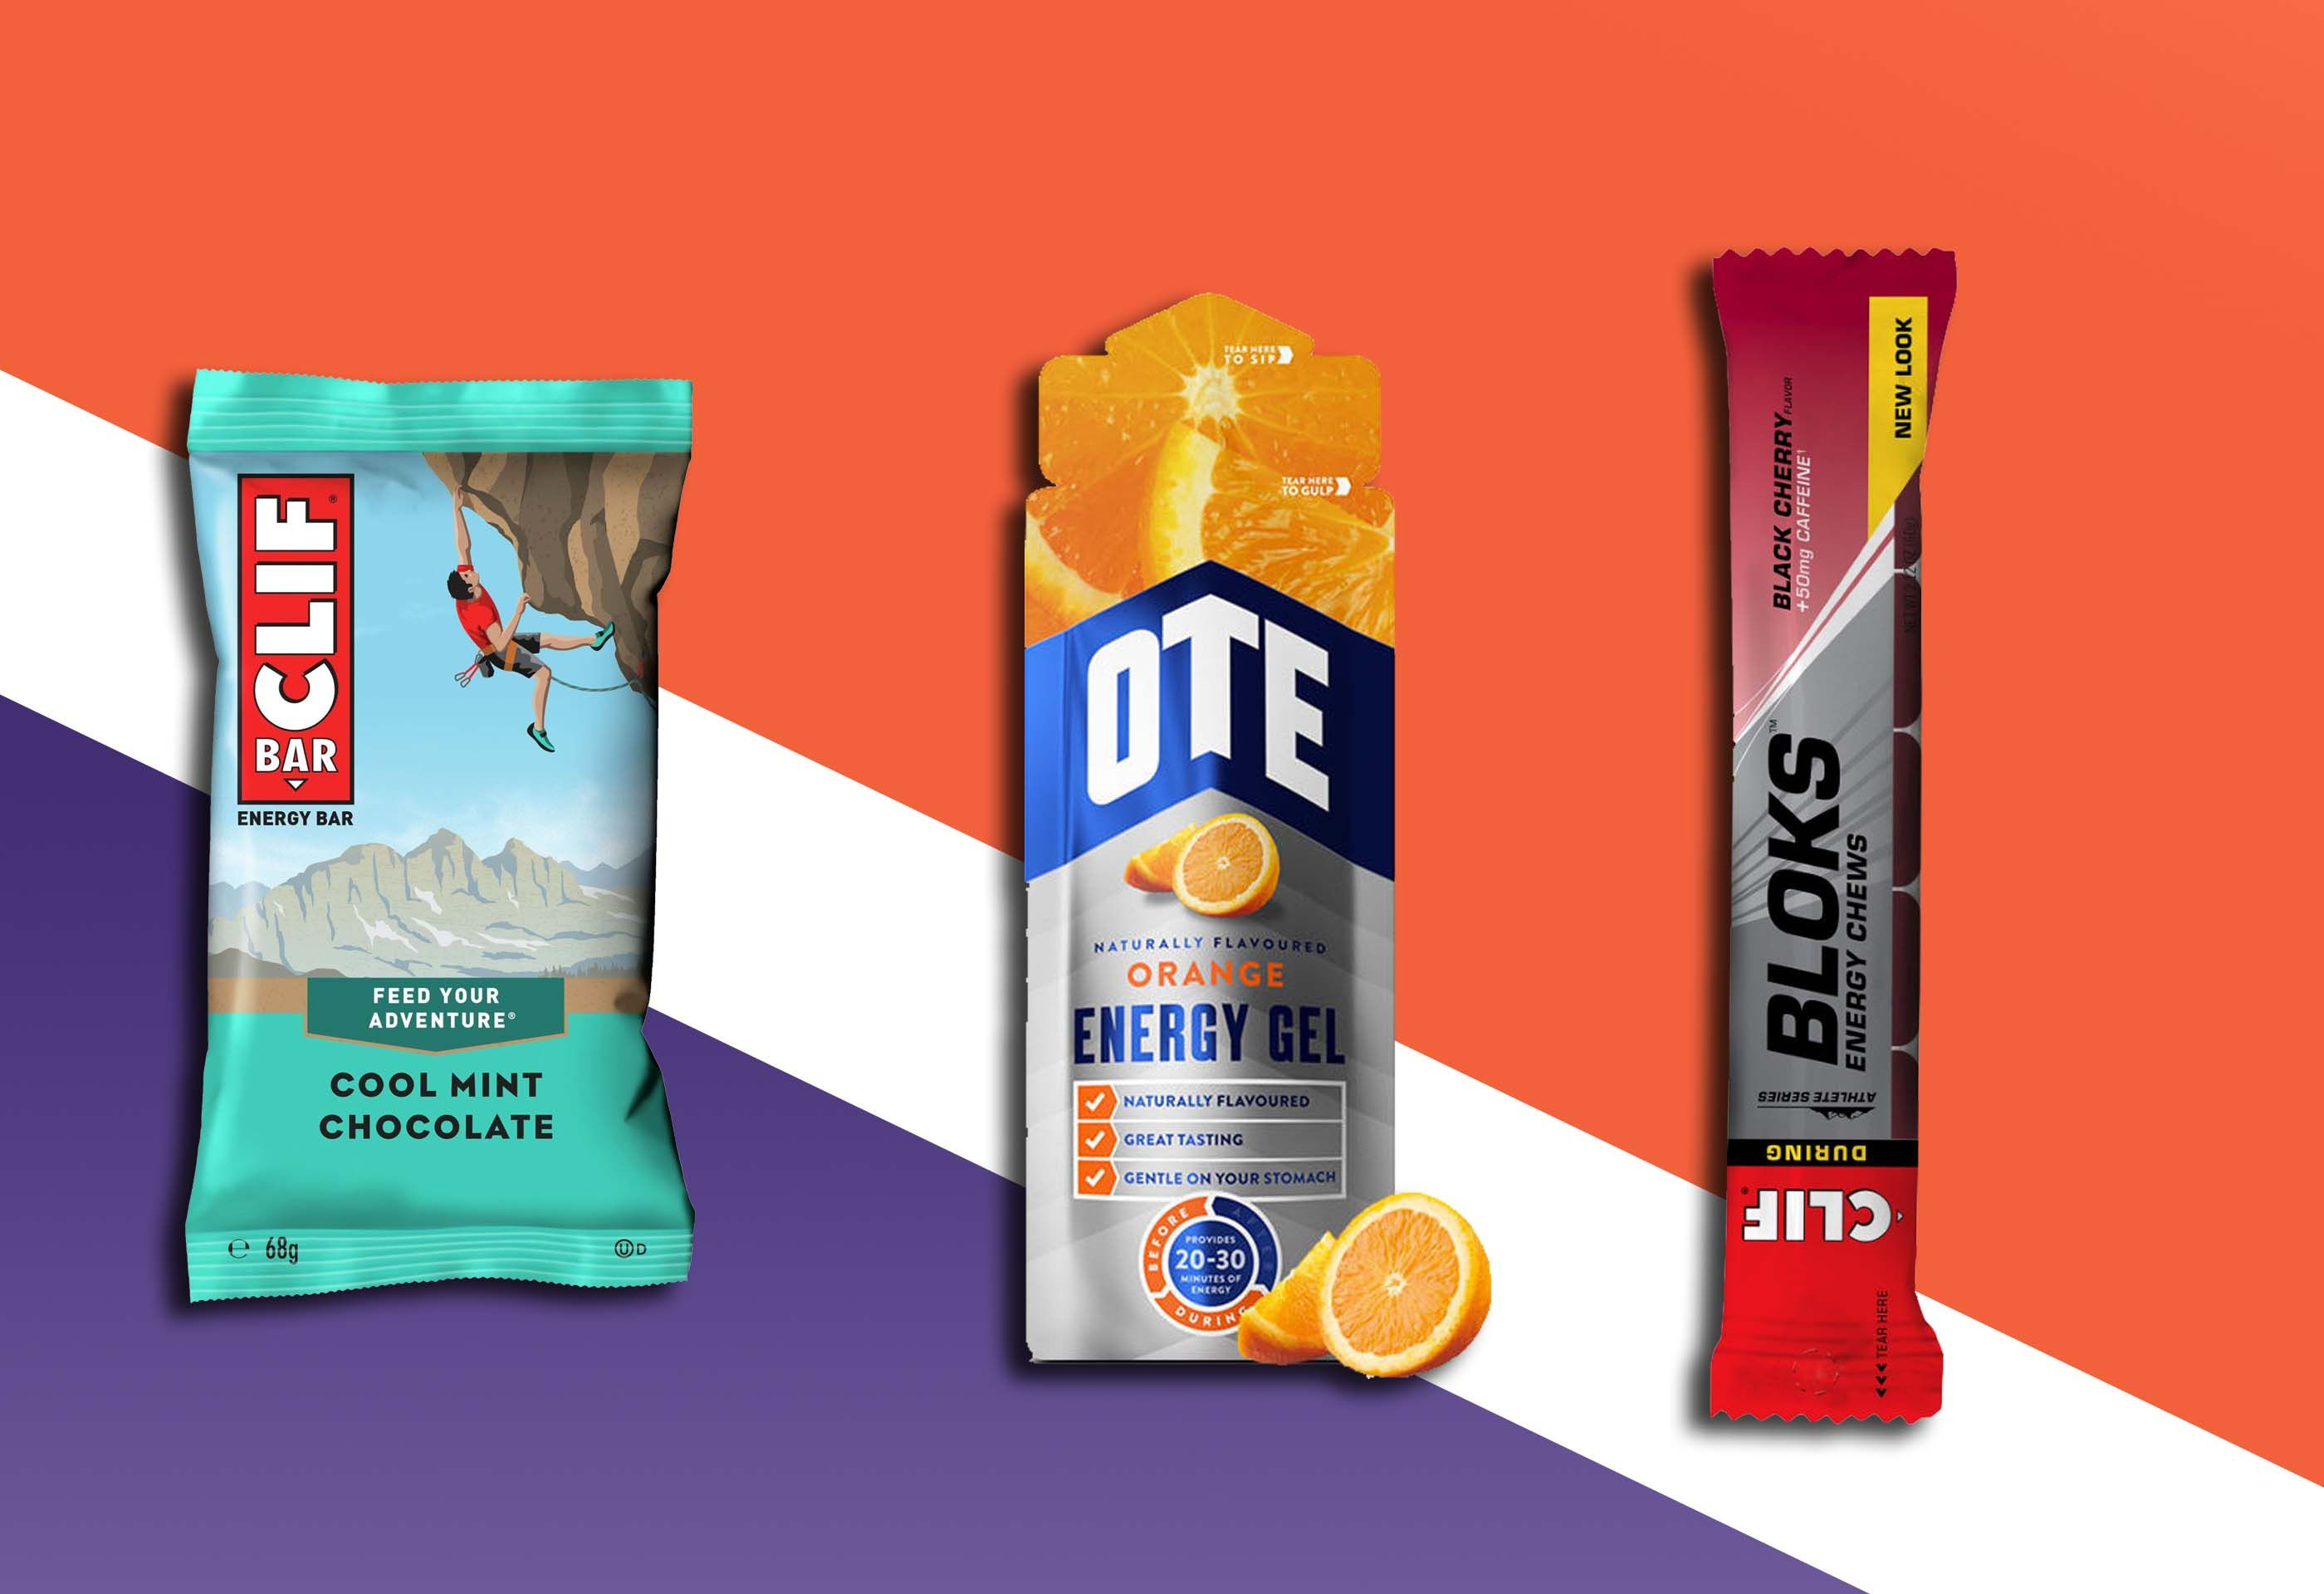 Training for a race? Wiggle has a huge sale on energy gels, bars and drinks